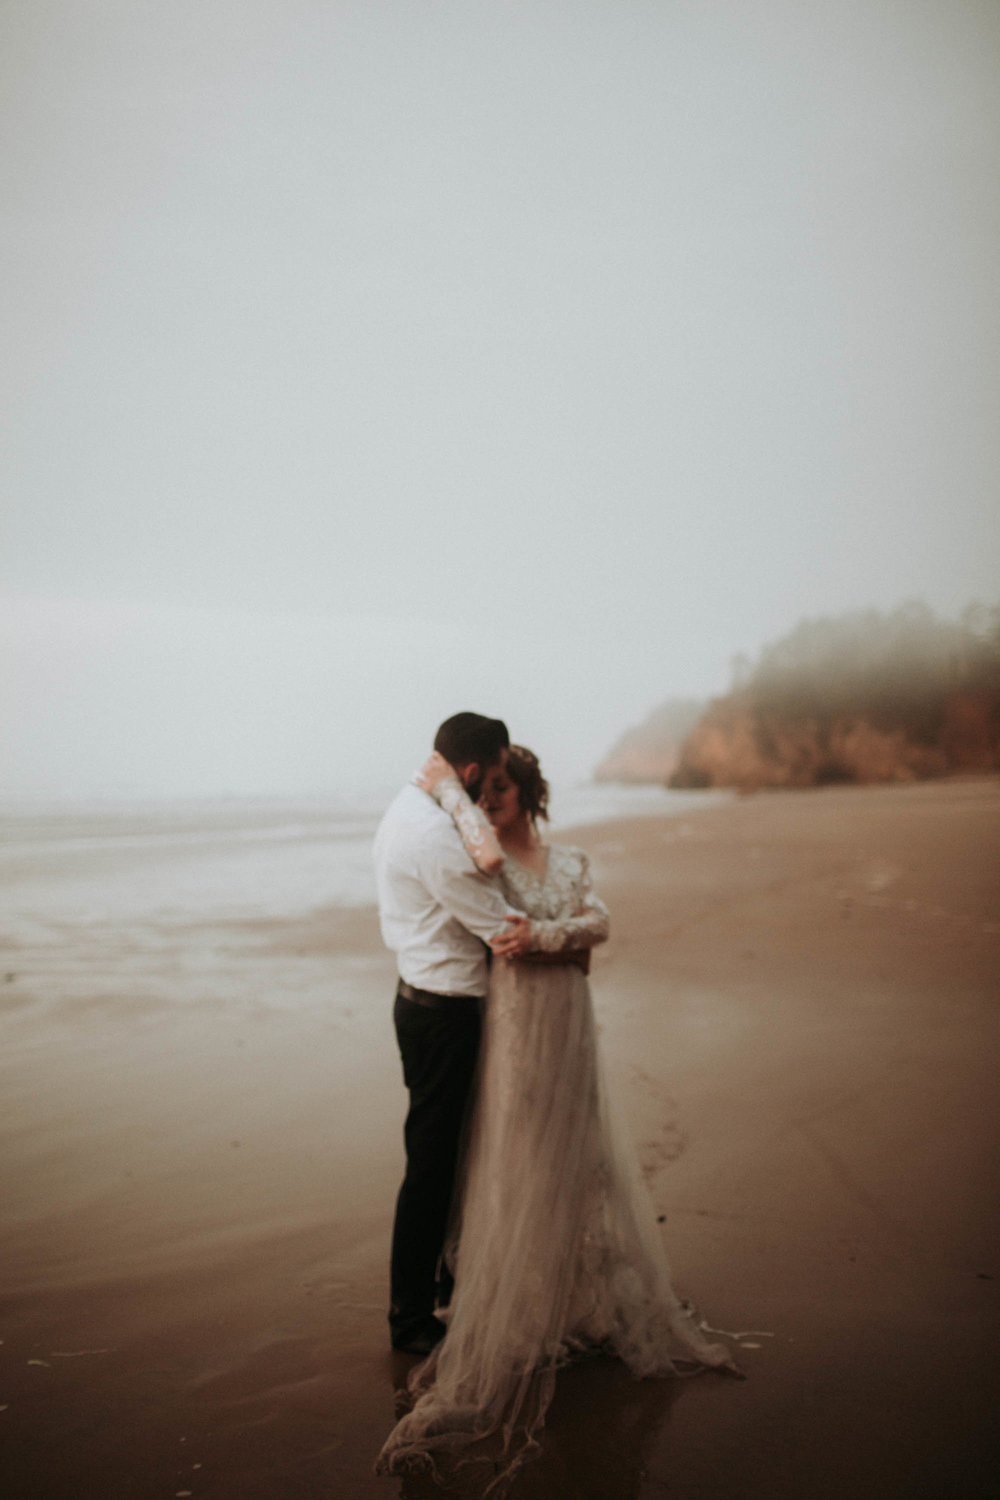 canonbeach_elopment_weddingphotographer-153.jpg